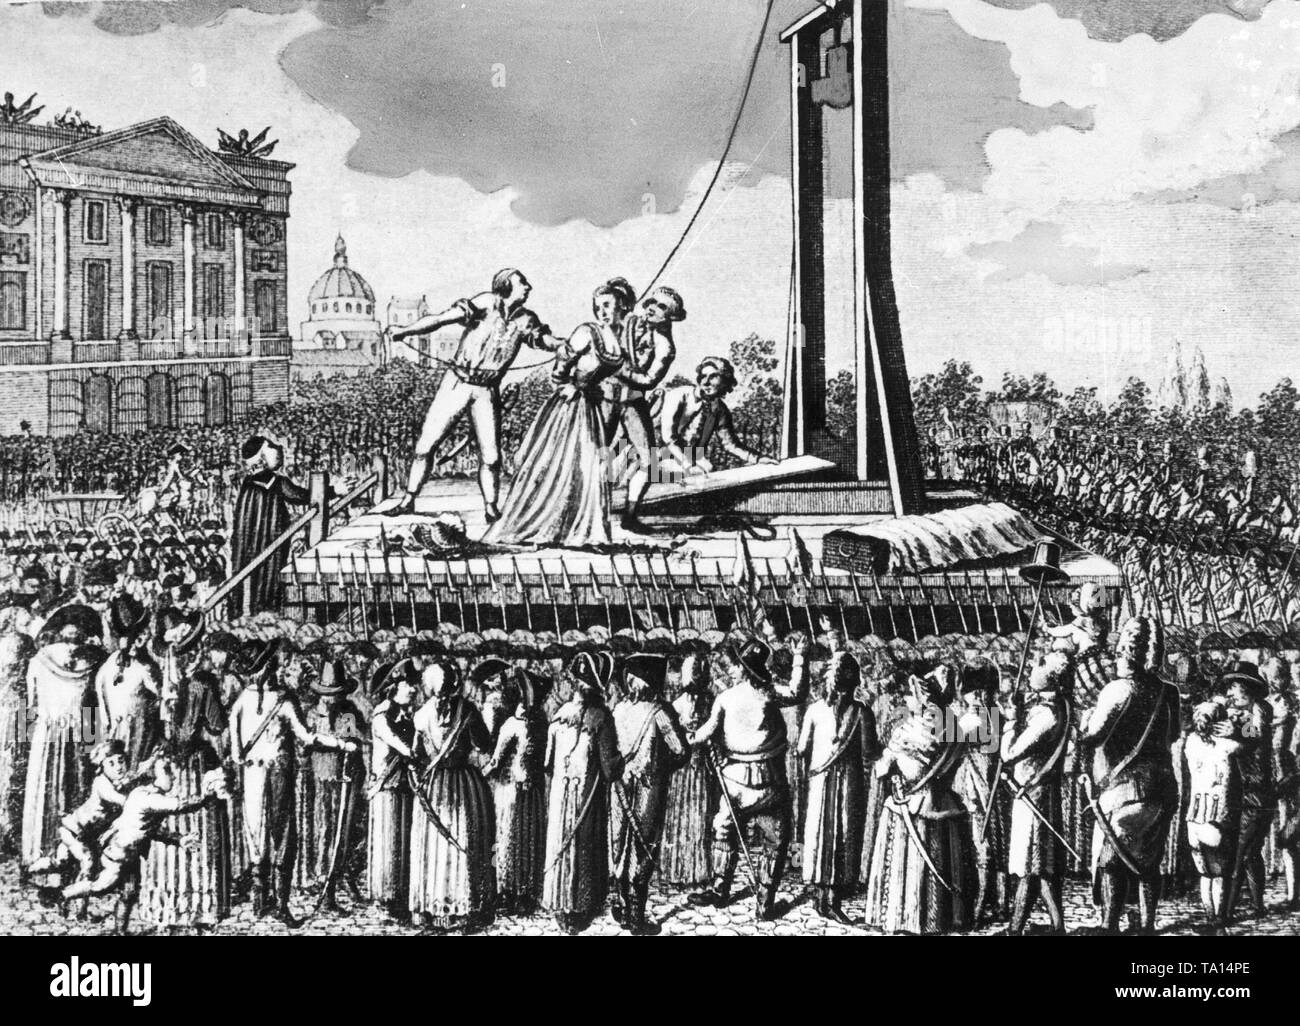 Contemporary drawing of the execution of the French queen Marie Antoinette, who was beheaded by guillotine in front of a large crowd on 16 October 1793. - Stock Image